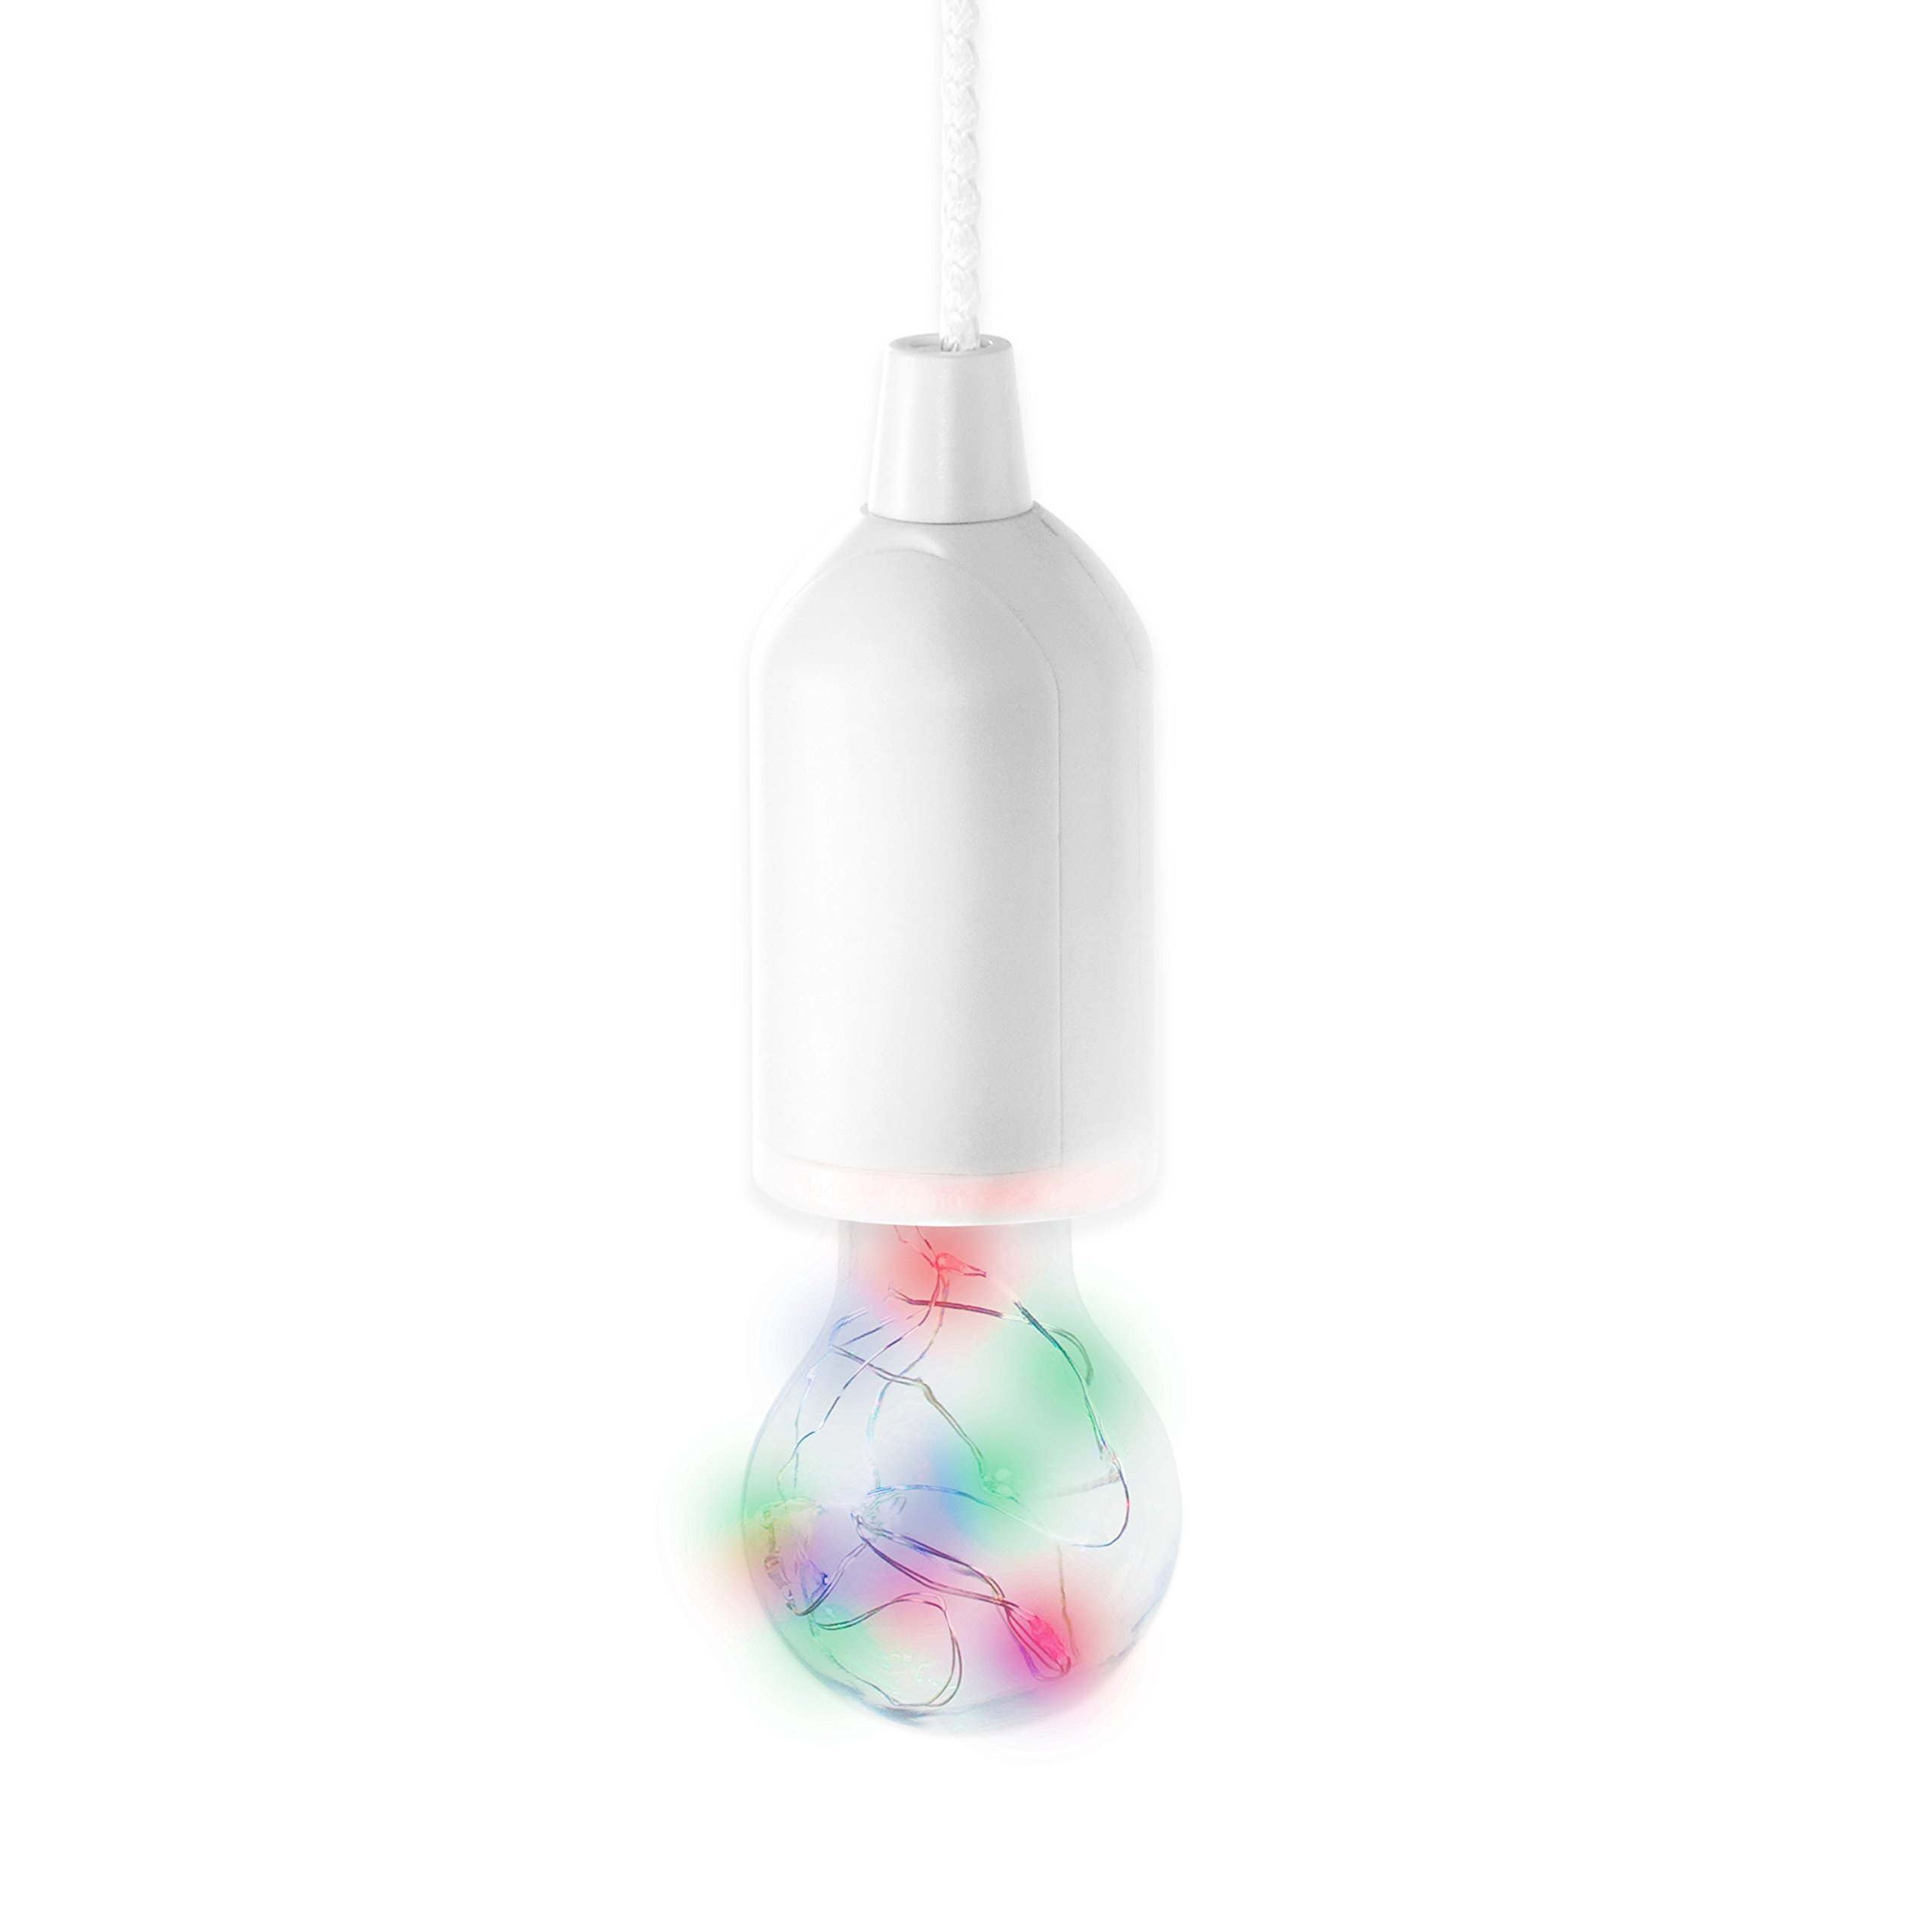 best sneakers 09cae 12d19 Invero® Hanging Pull Cord Portable Bulb On A Rope with Colour Changing  Flashing LED Light Ideal for Home, Parties, BBQ's, Garages, Camping and  more - ...